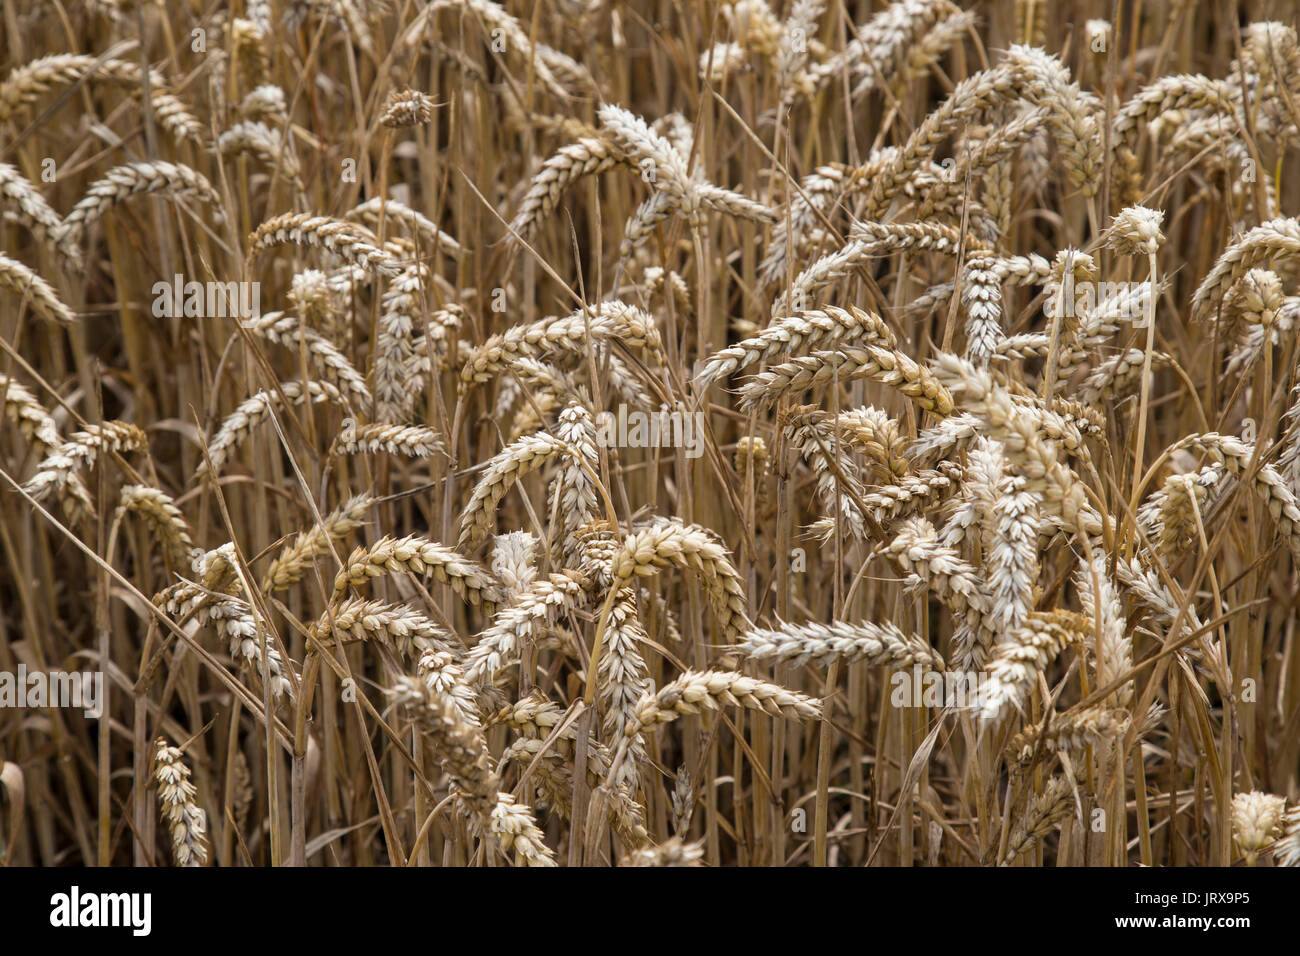 Close up view of ears of wheat in a cornfield - Stock Image